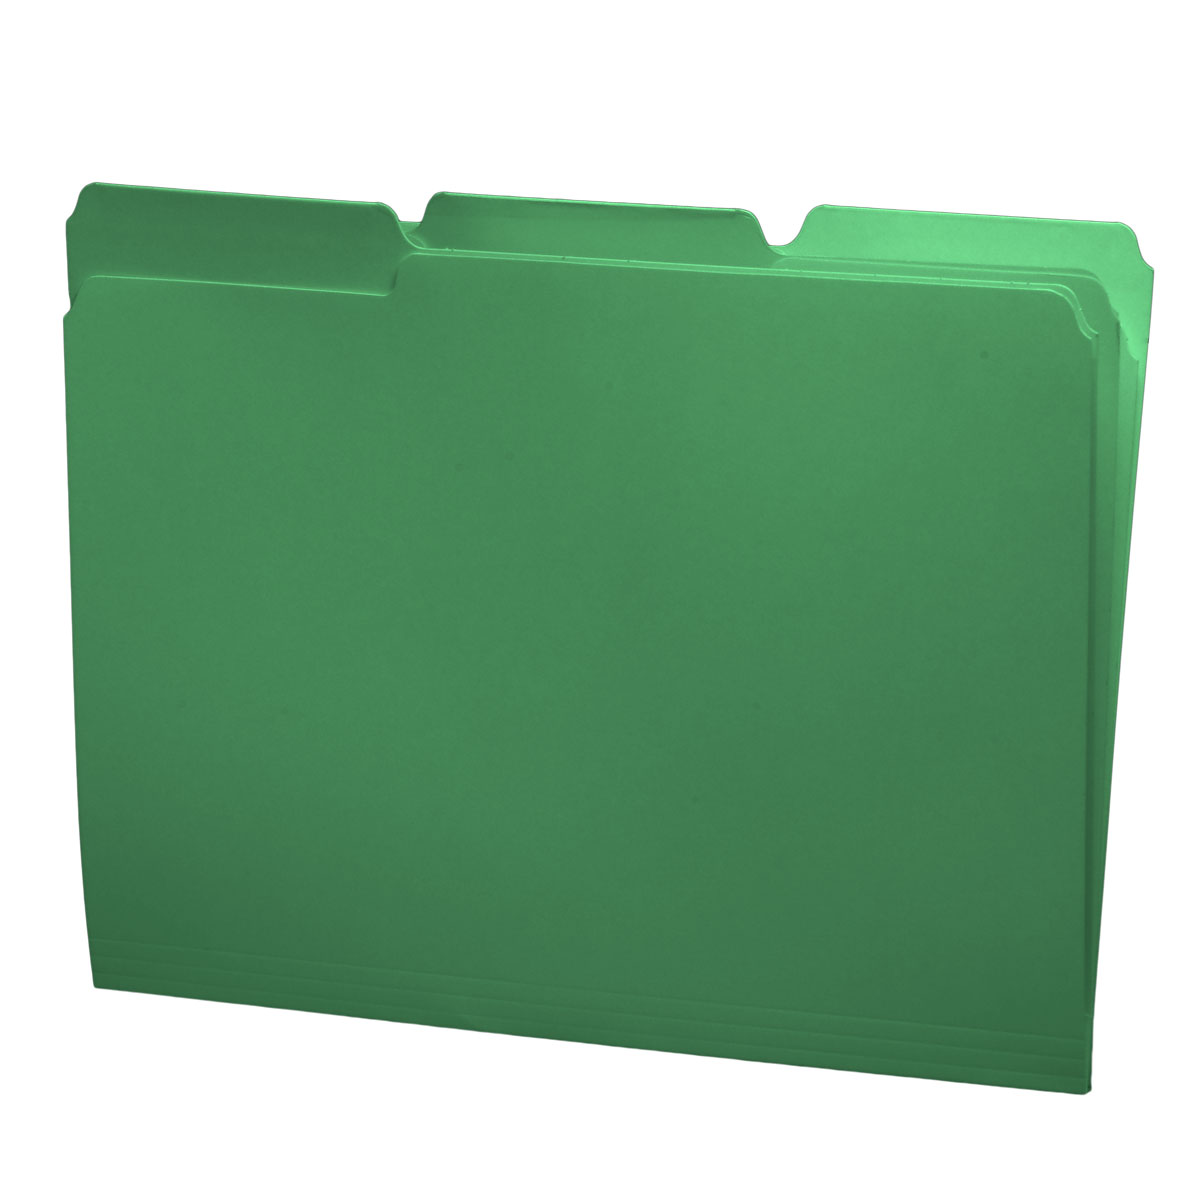 S-30503-GRN - 11 pt Green Folders, 1/3 Cut Top Tab - Assorted, Letter Size (Box of 100)